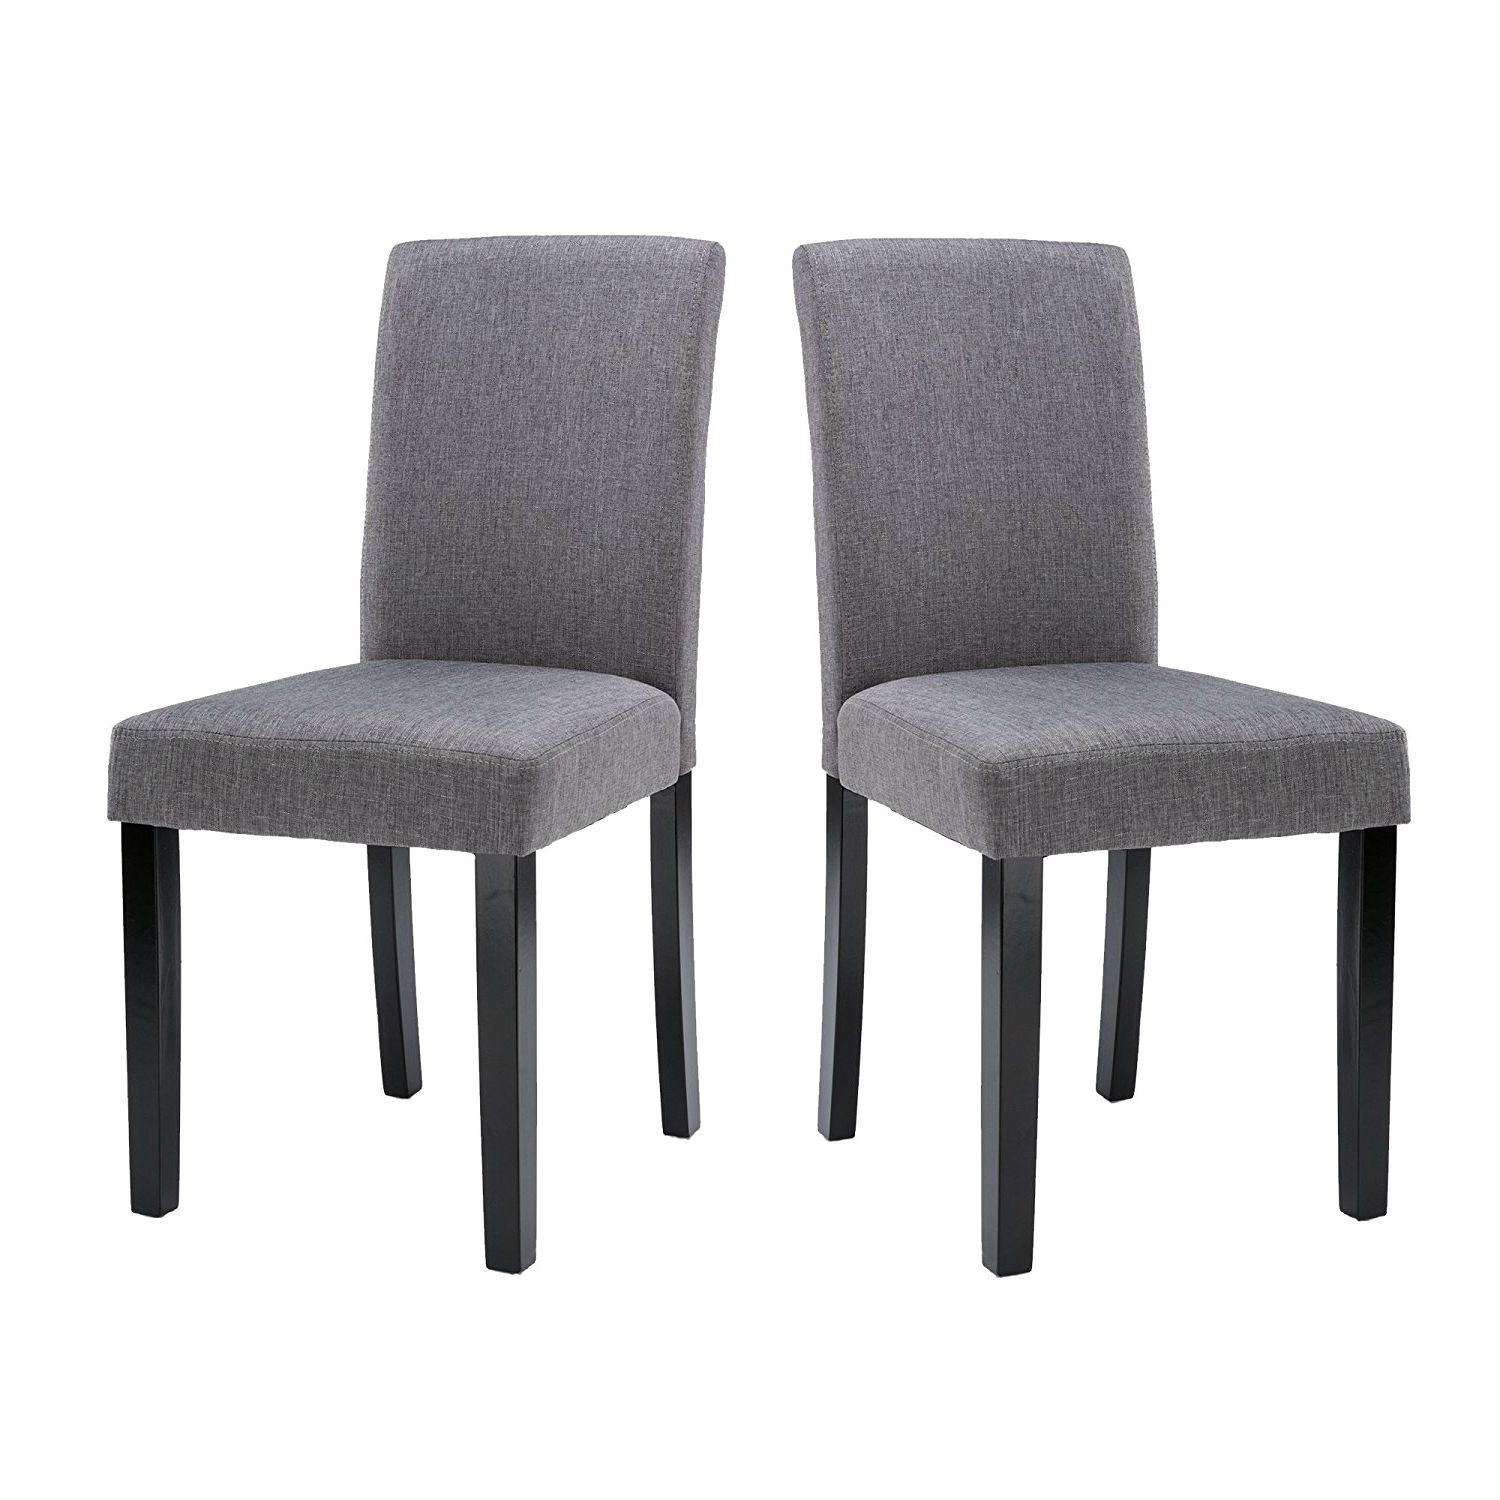 Set of 2 - Grey Fabric Dining Chairs with Black Wood Legs